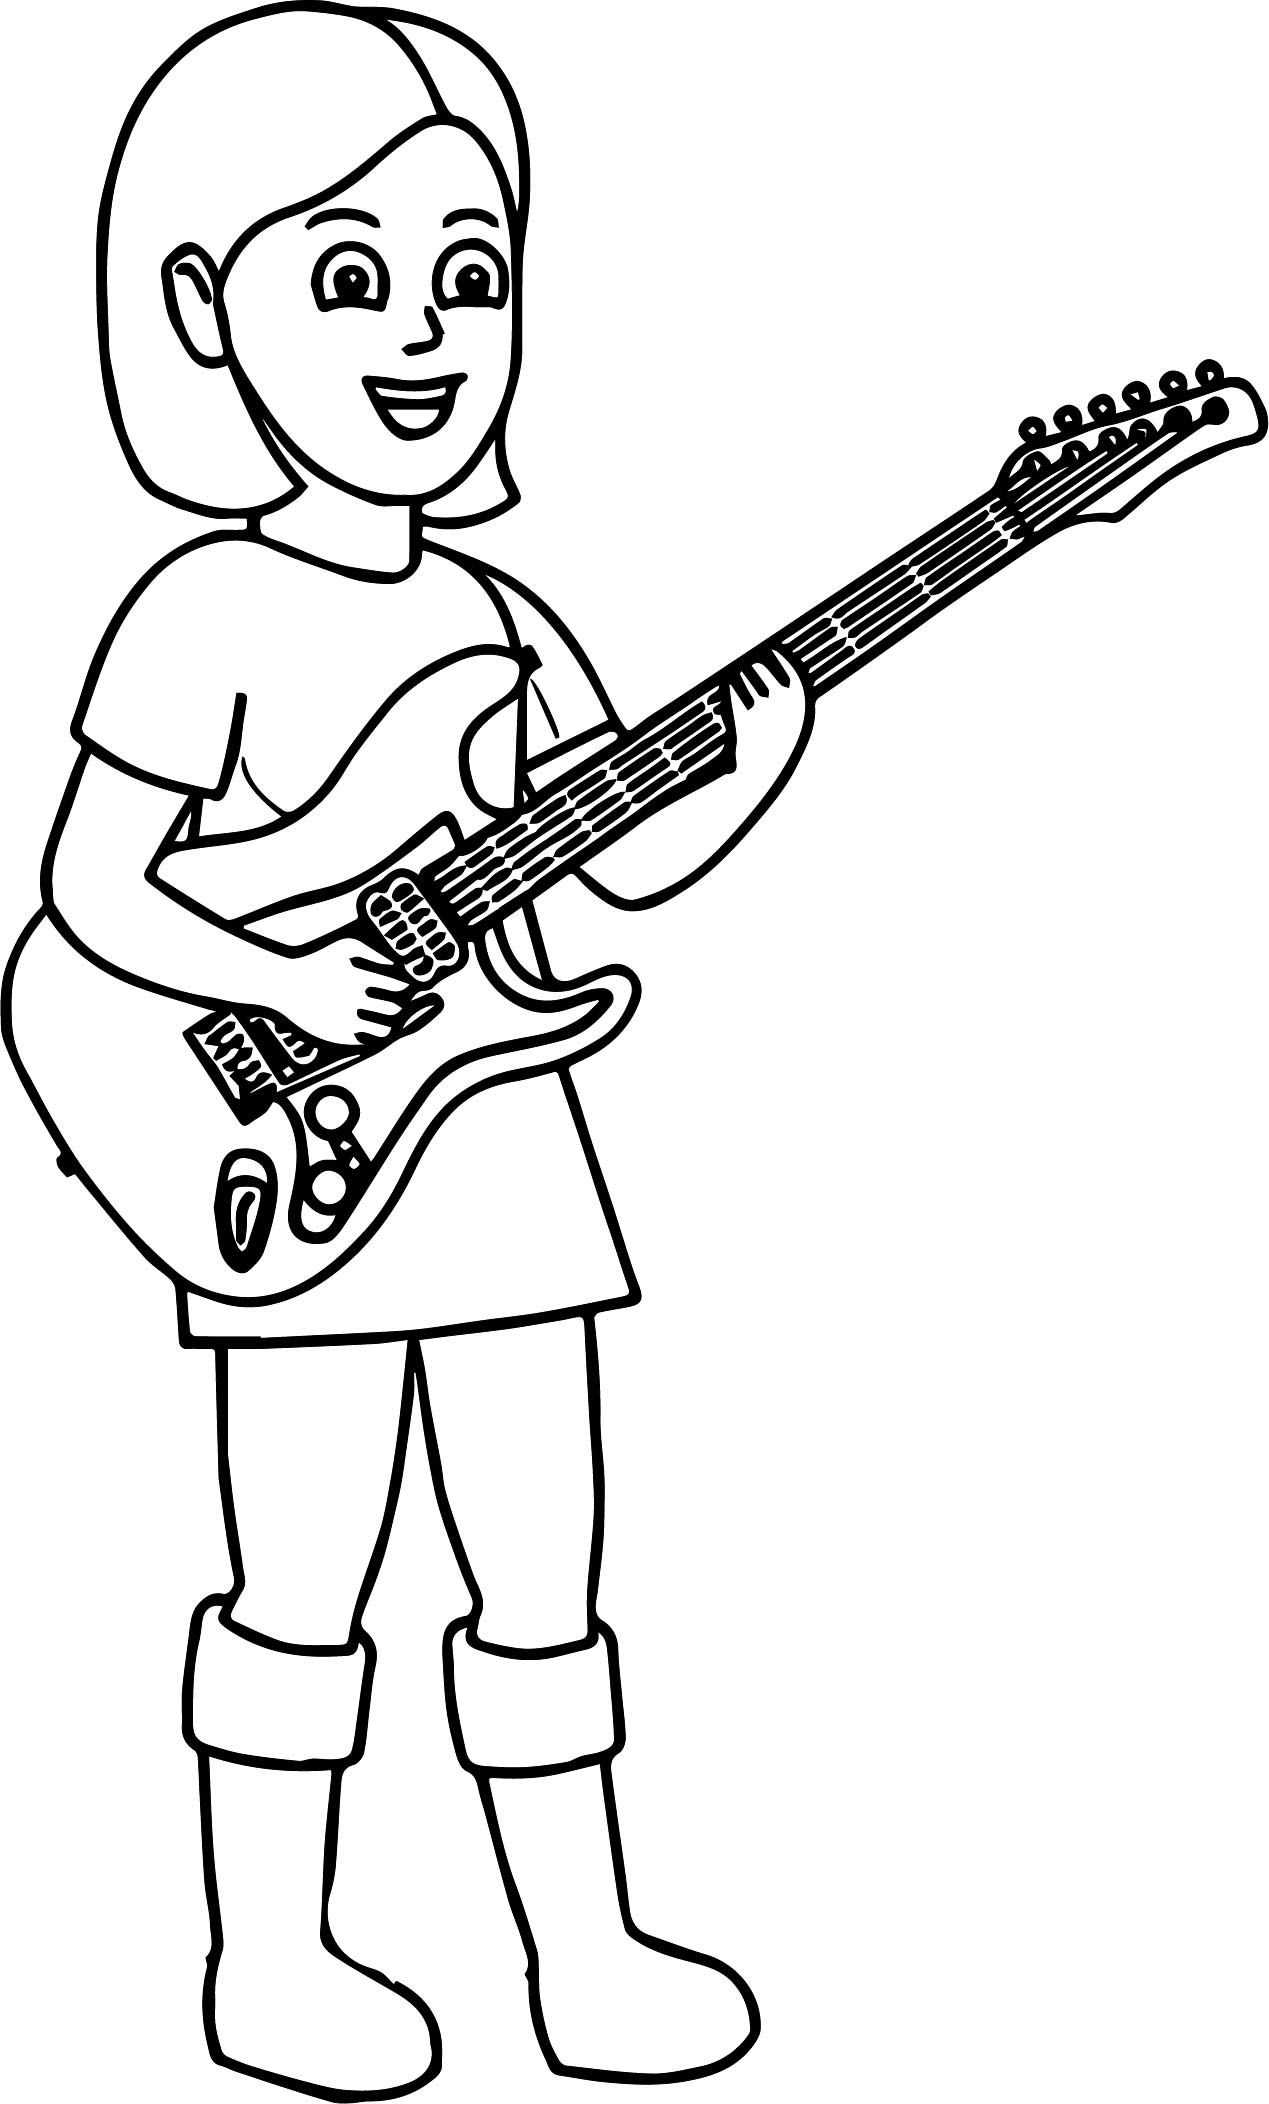 kids playing music playing the guitar coloring page